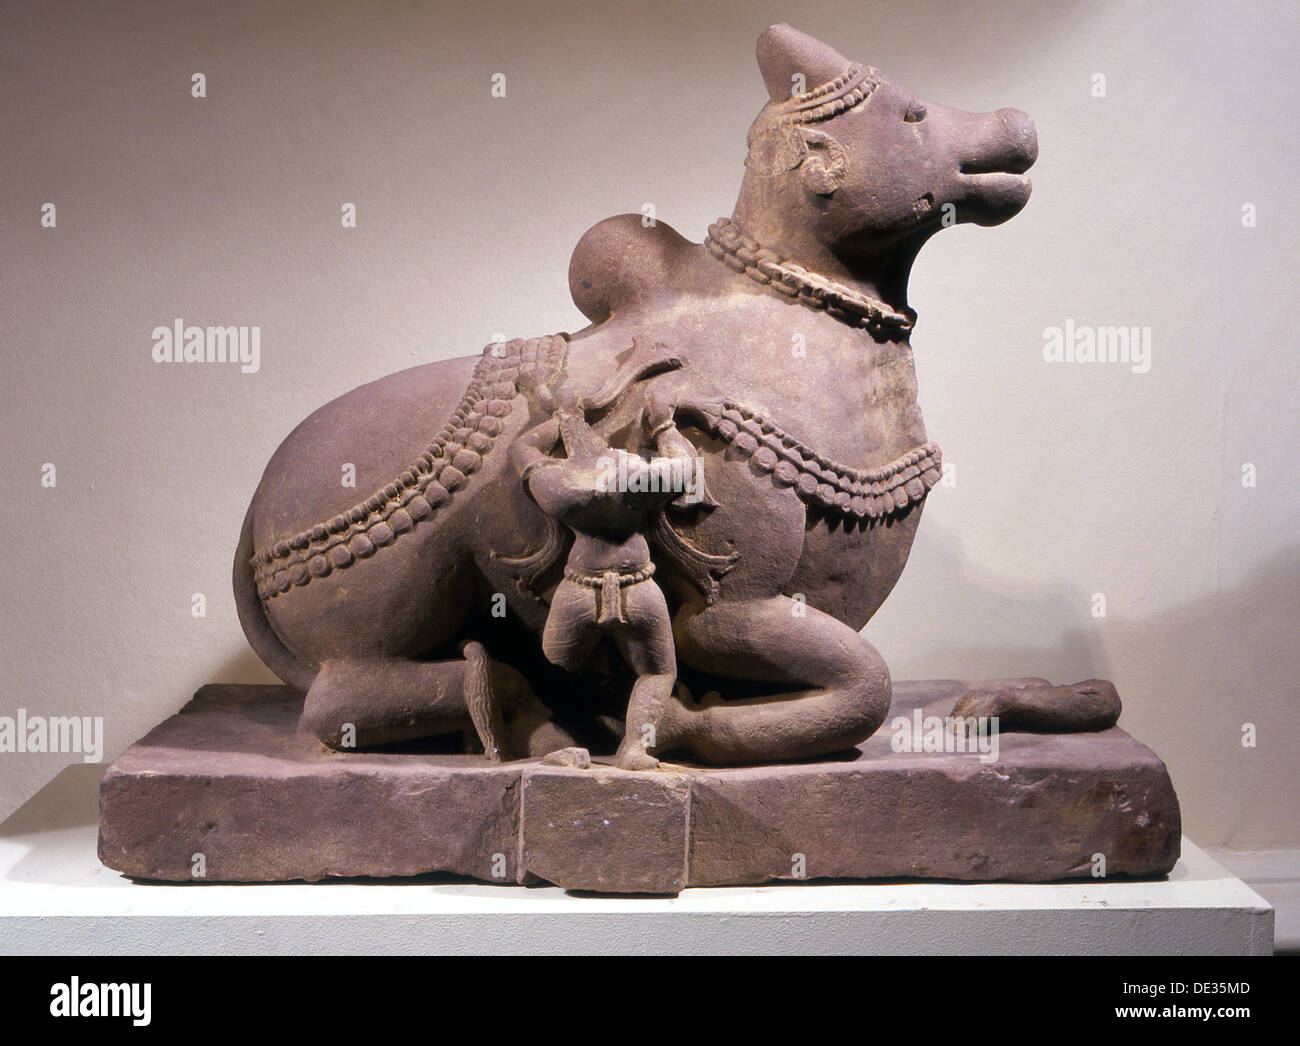 Free standing statue of Nandi, the bull mount of Shiva with attendant tying a garland around his neck. - Stock Image